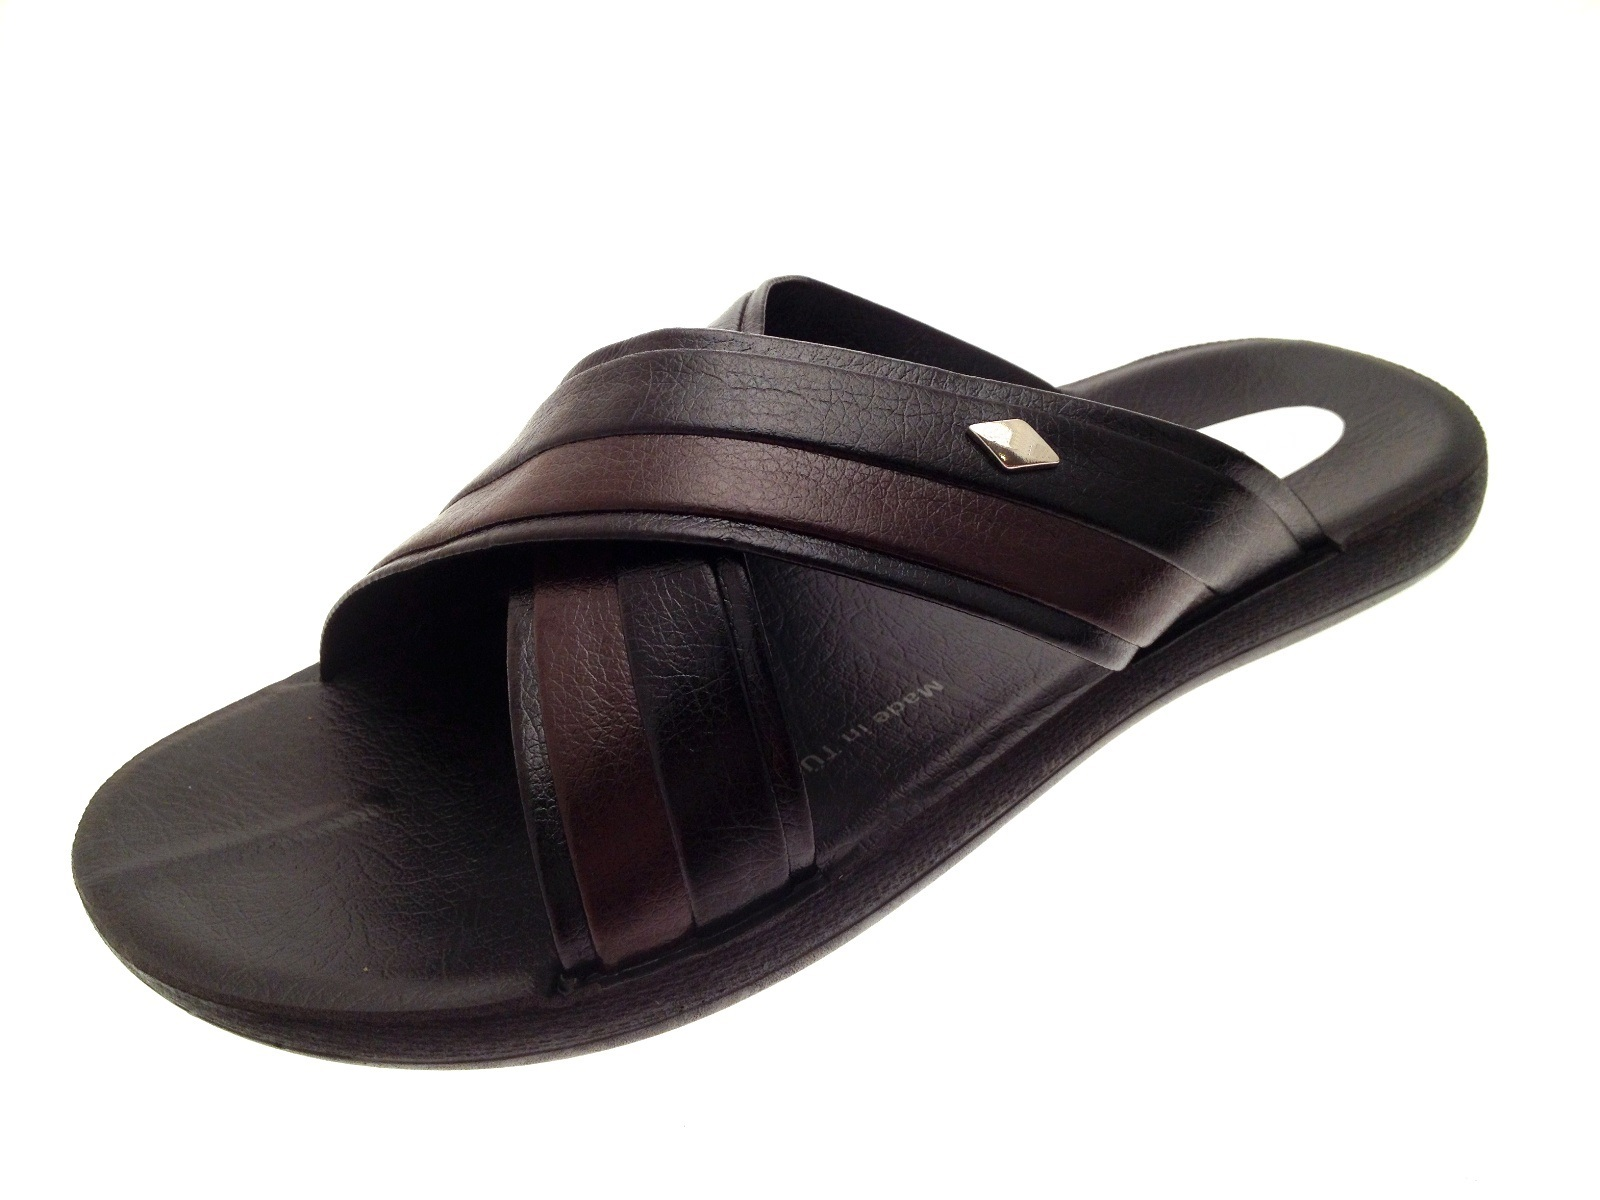 286dd22b5845 Mens Vintage Flip Flops Beach Sandals Faux Leather Holiday Mules ...